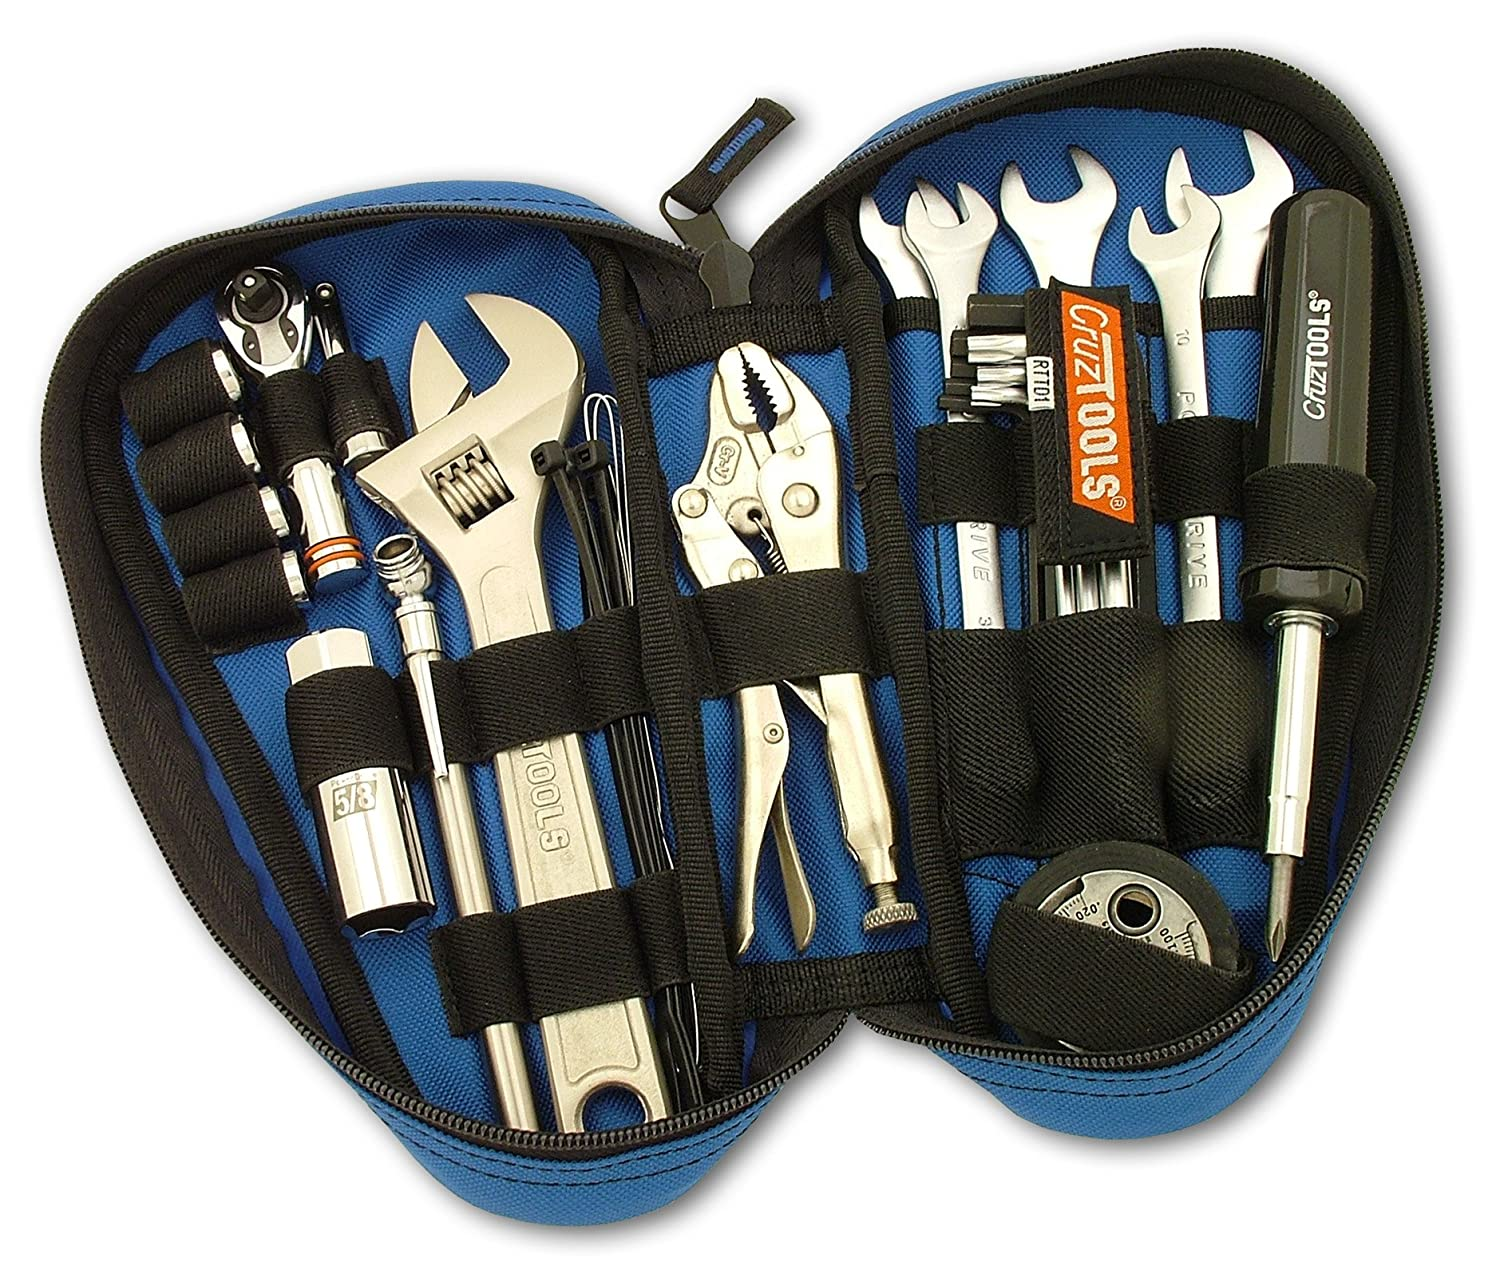 Cruz Tools RoadTech (RTTD1) Tool Kit CruzTOOLS